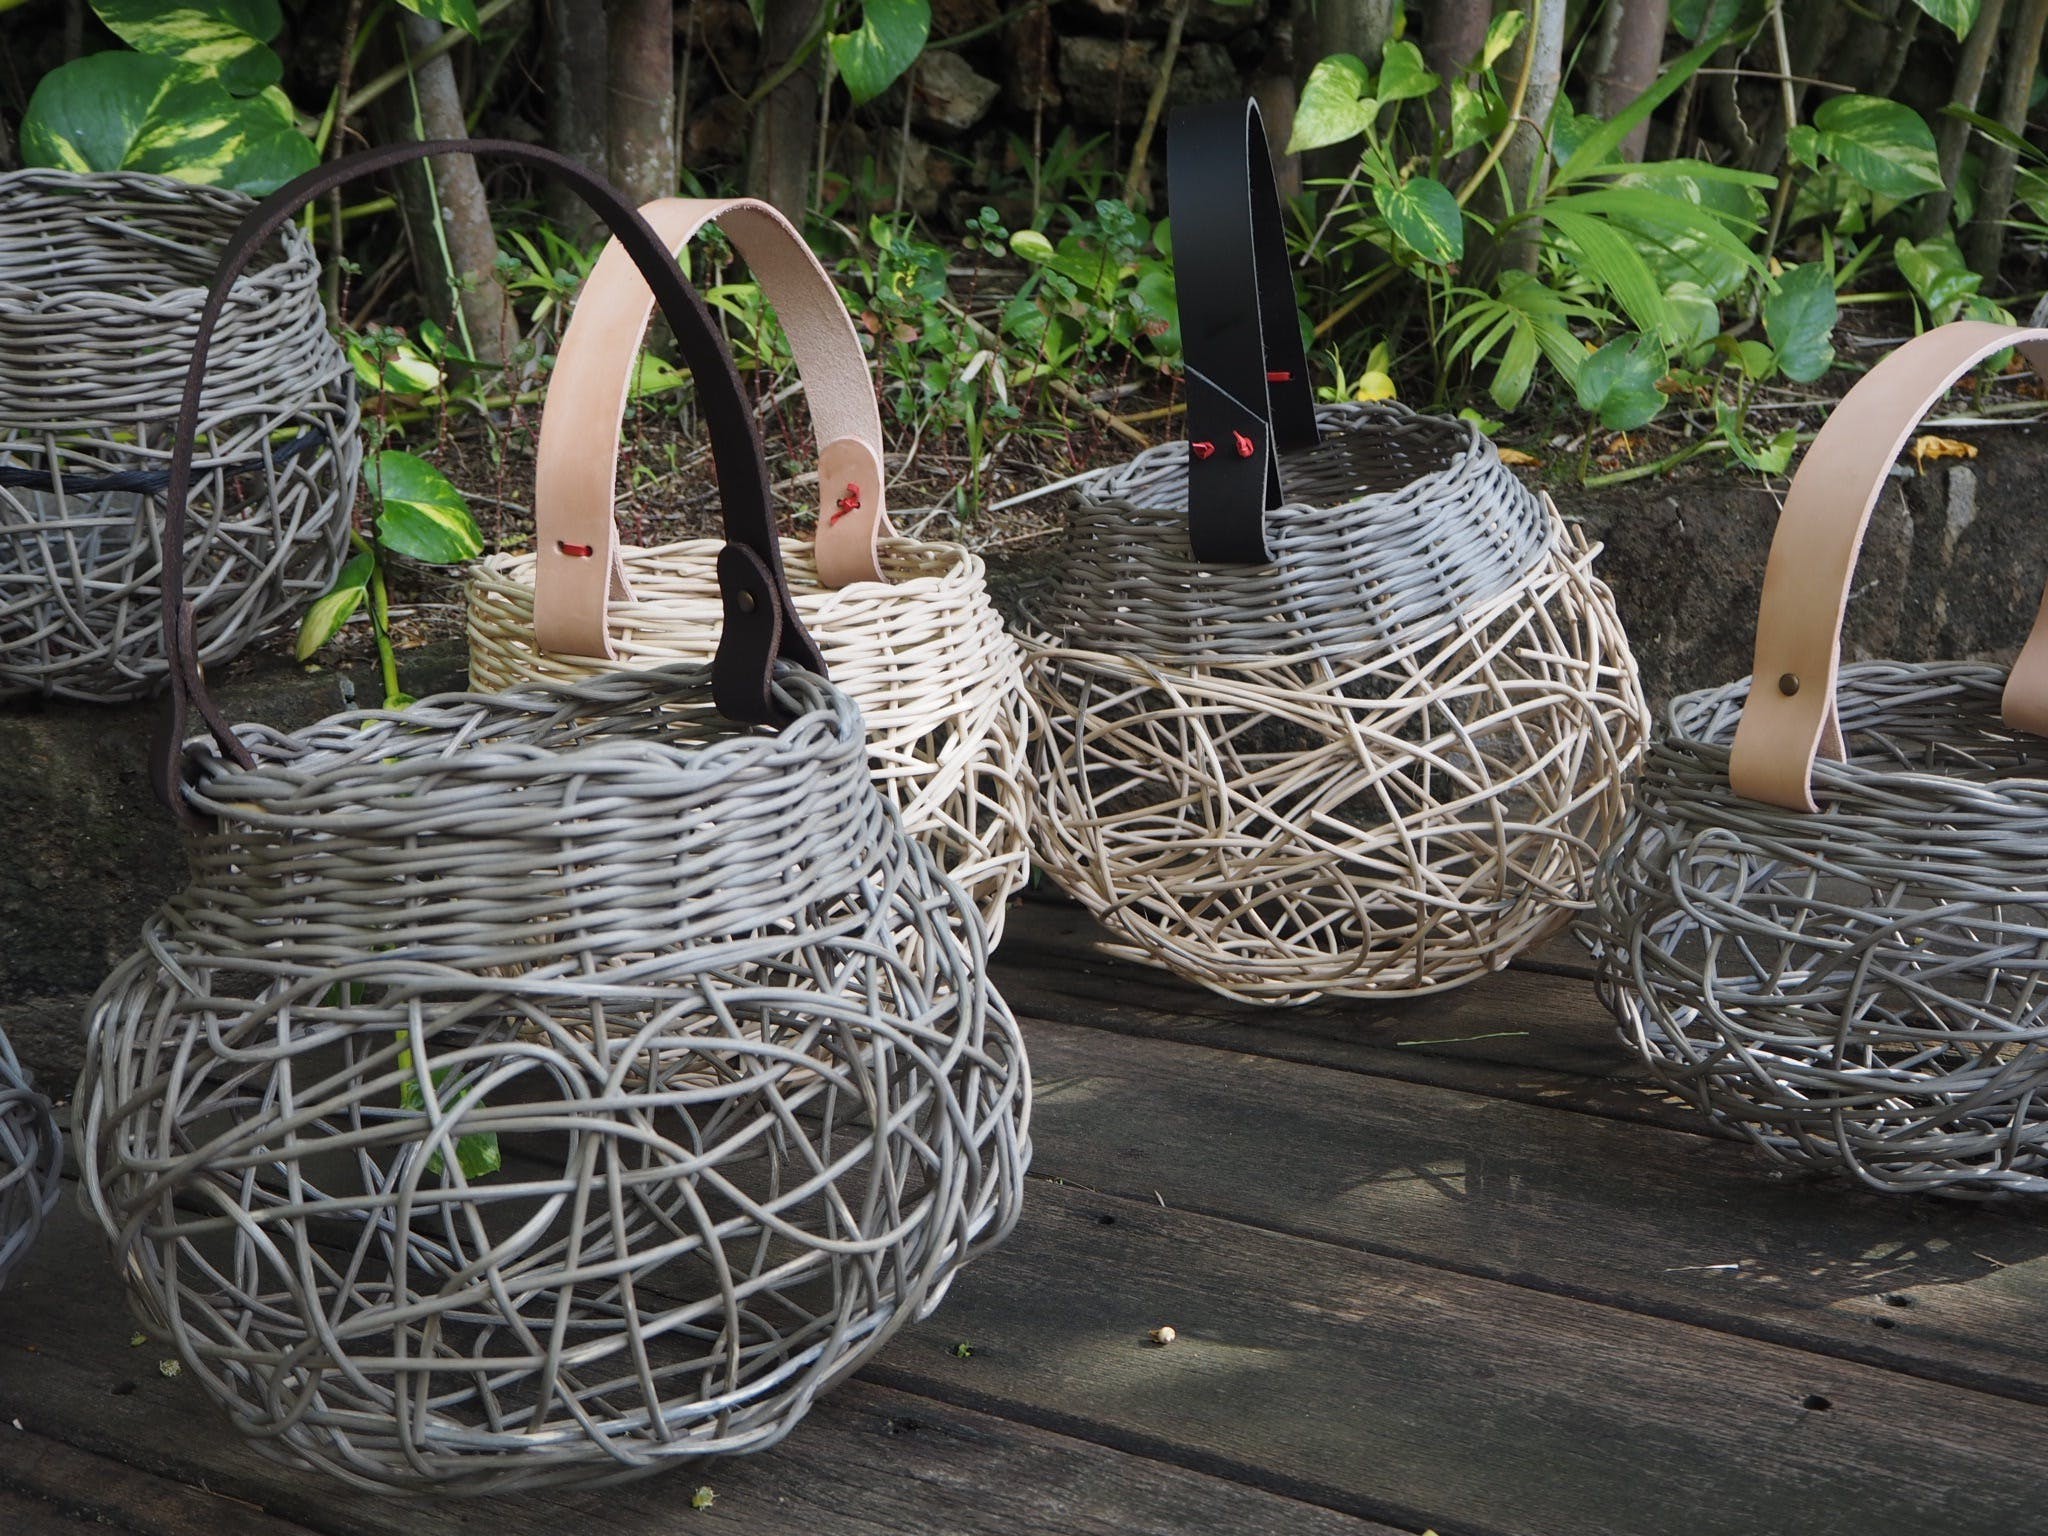 Weaving Woven Basket with Leather Handle - VIC Tourism